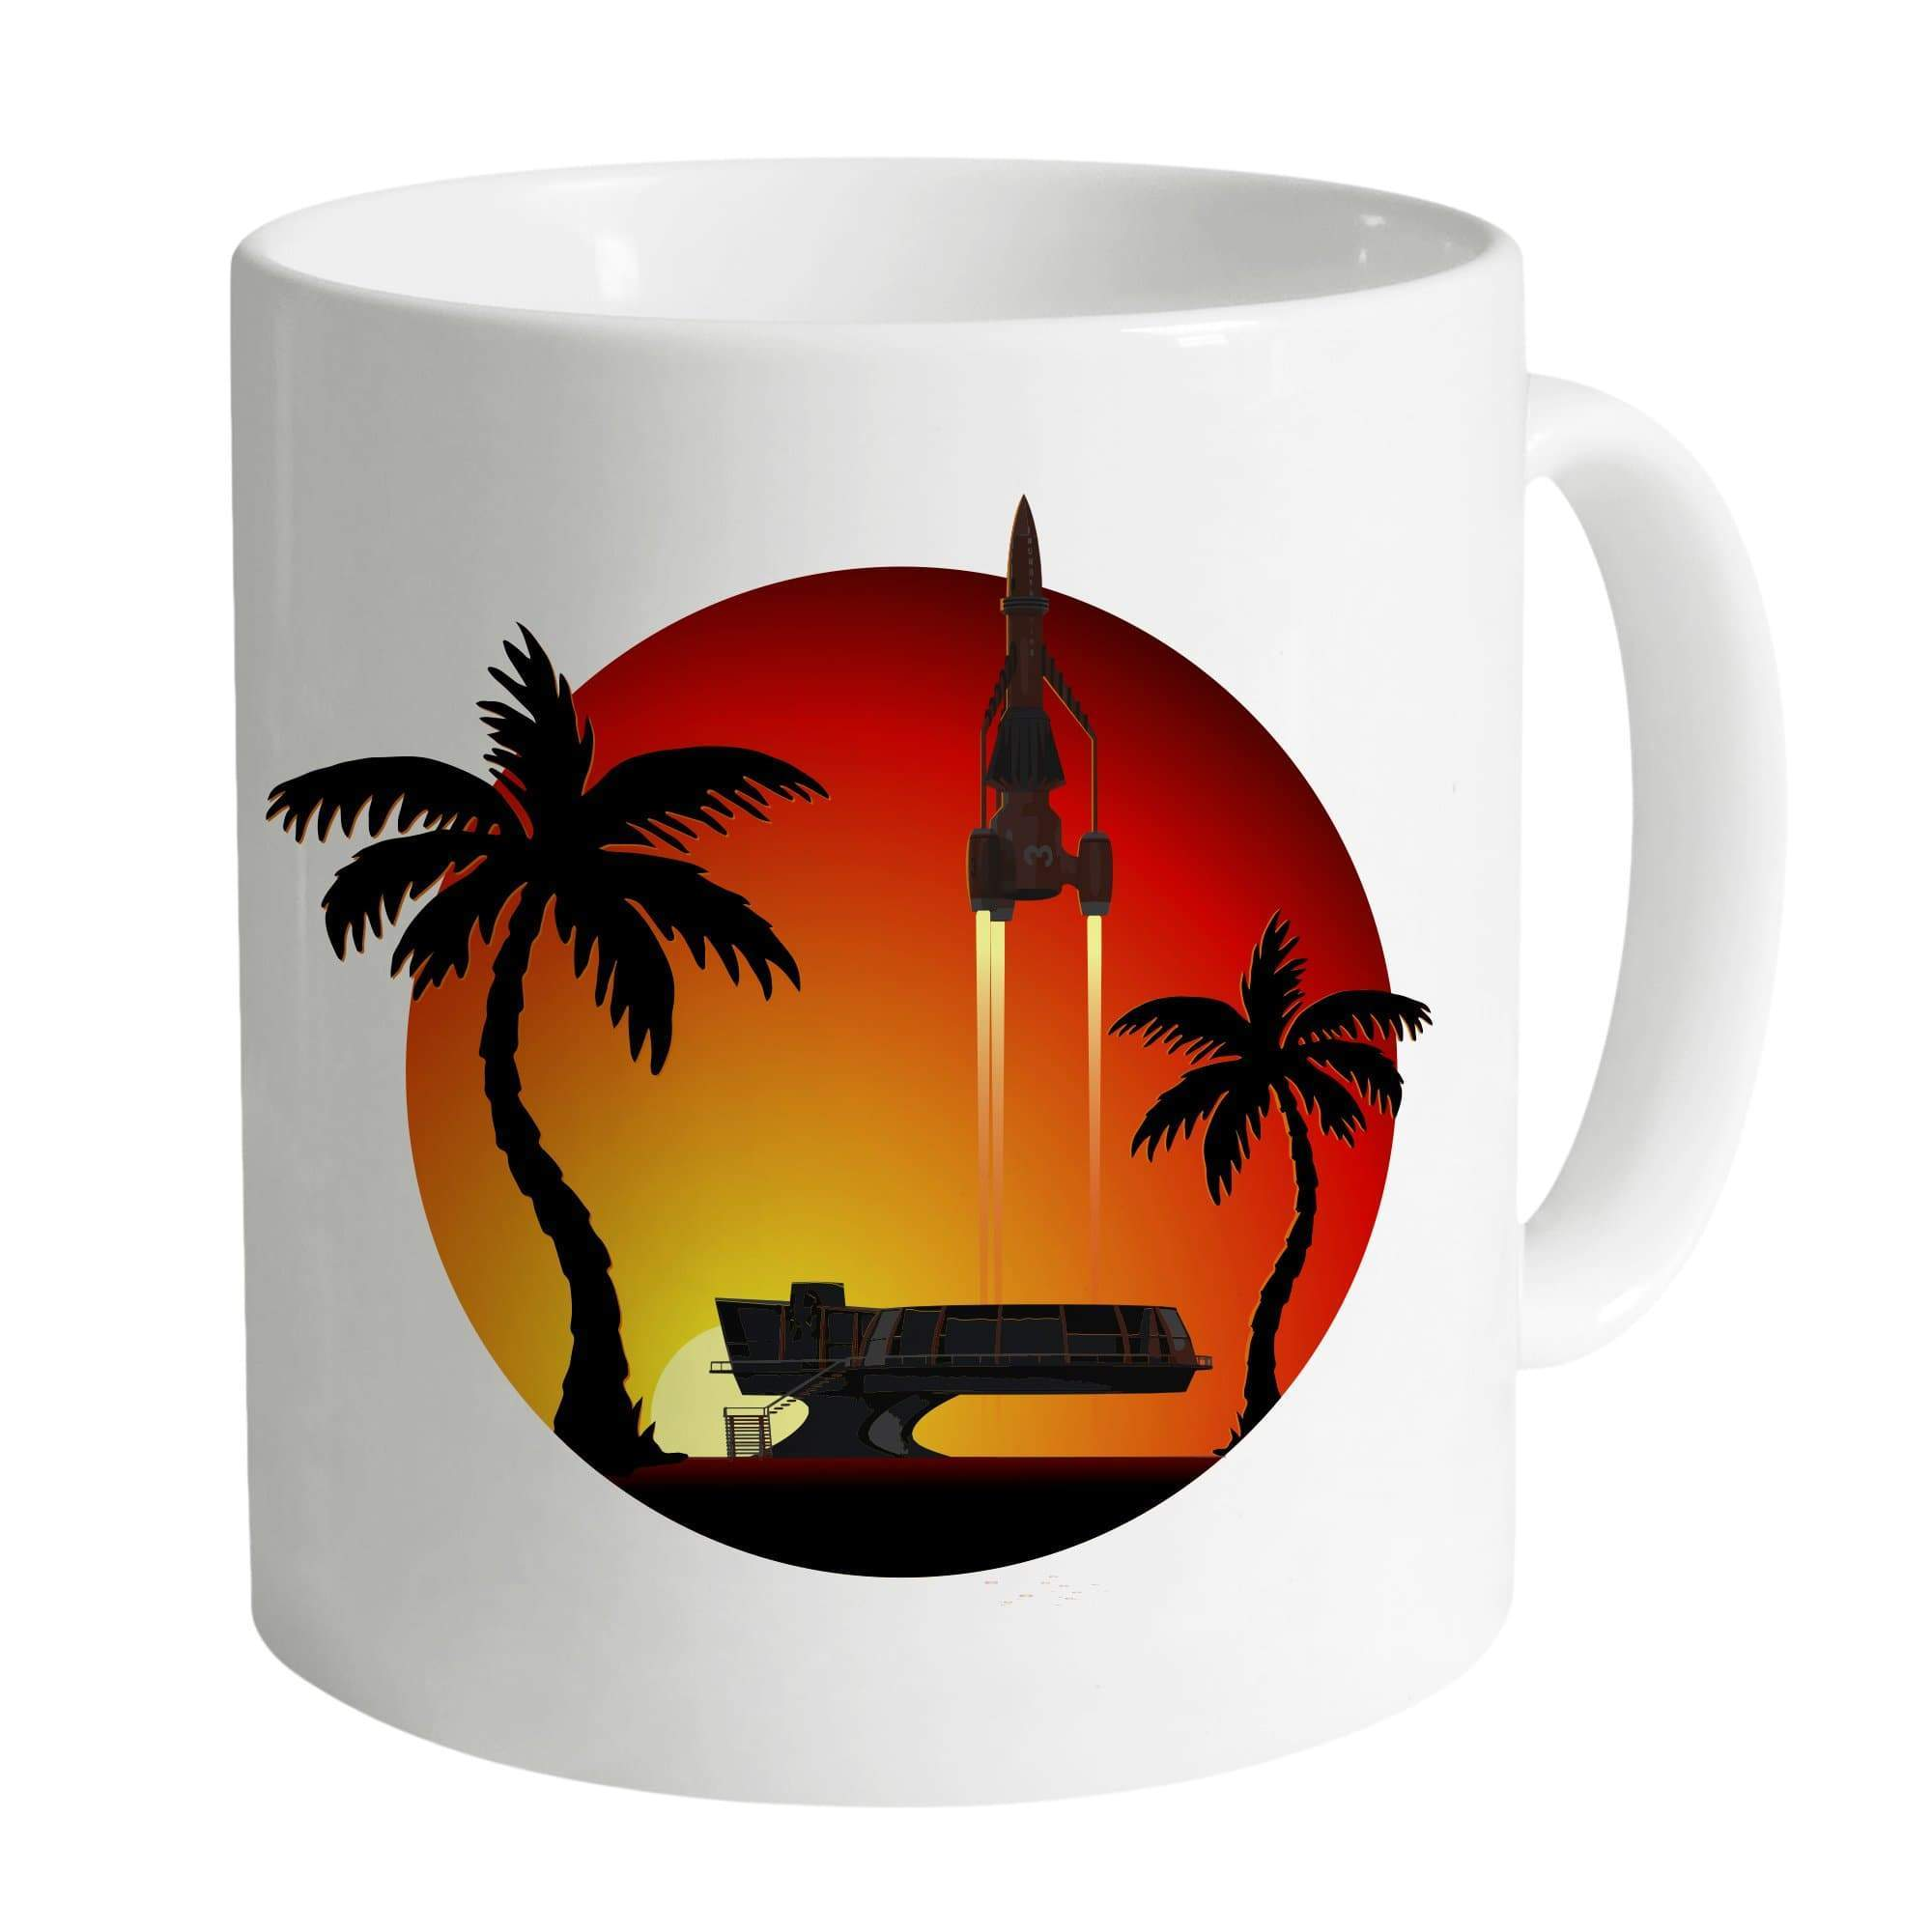 Thunderbird 3 Sunset White Mug [Official & Exclusive] - The Gerry Anderson Store